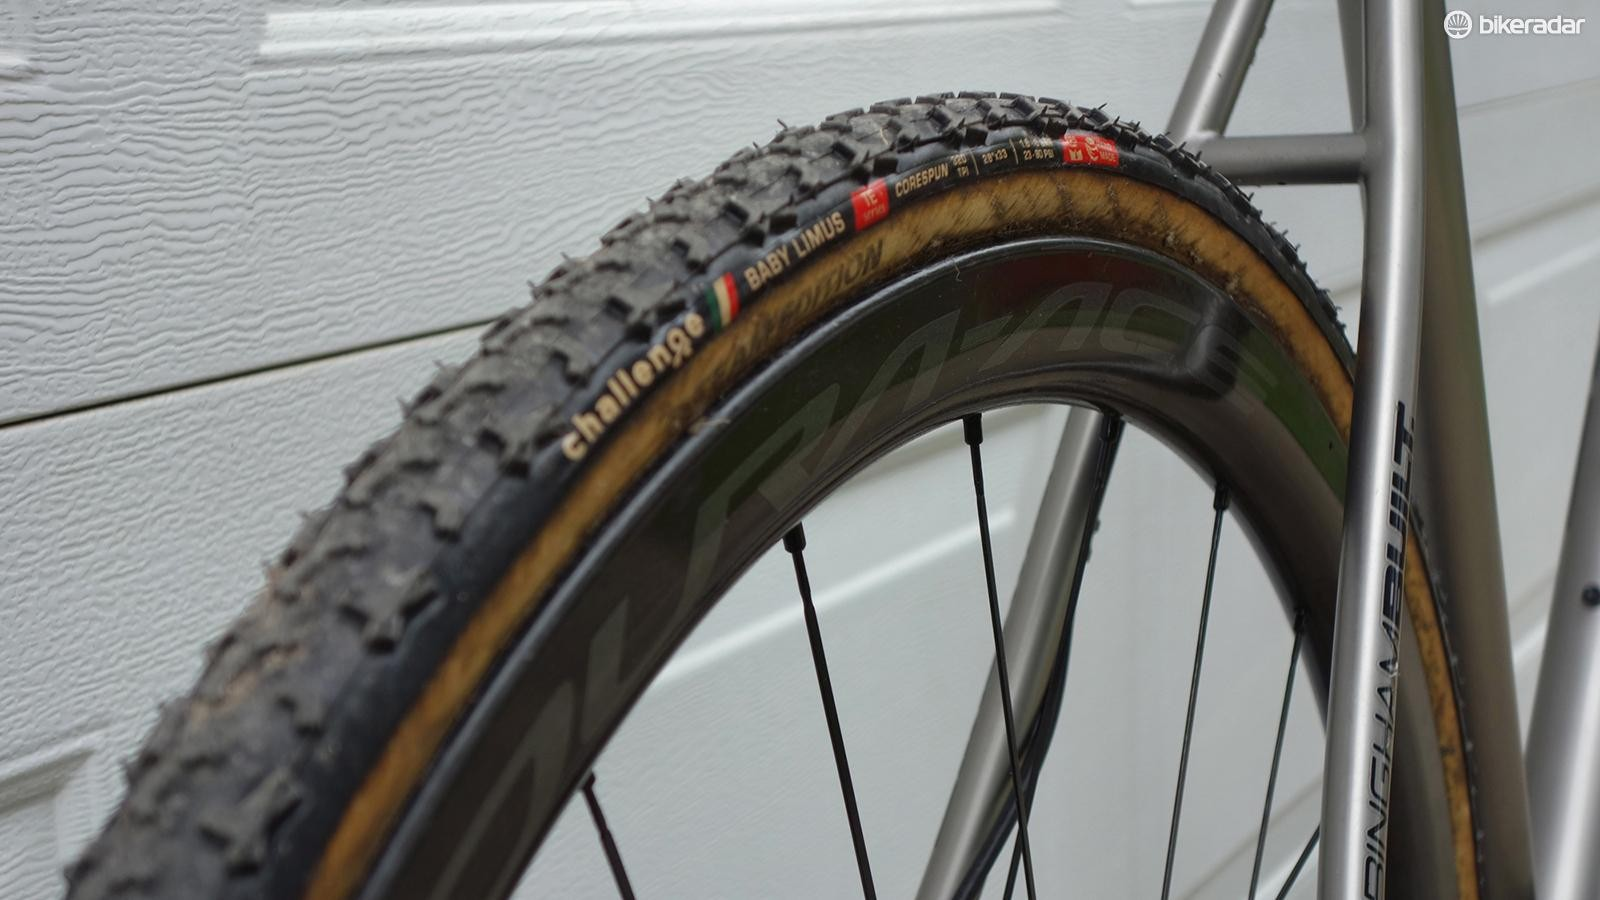 Challenge Baby Limus tyres are used in conjunction with Shimano Dura-Ace R9100 series wheels